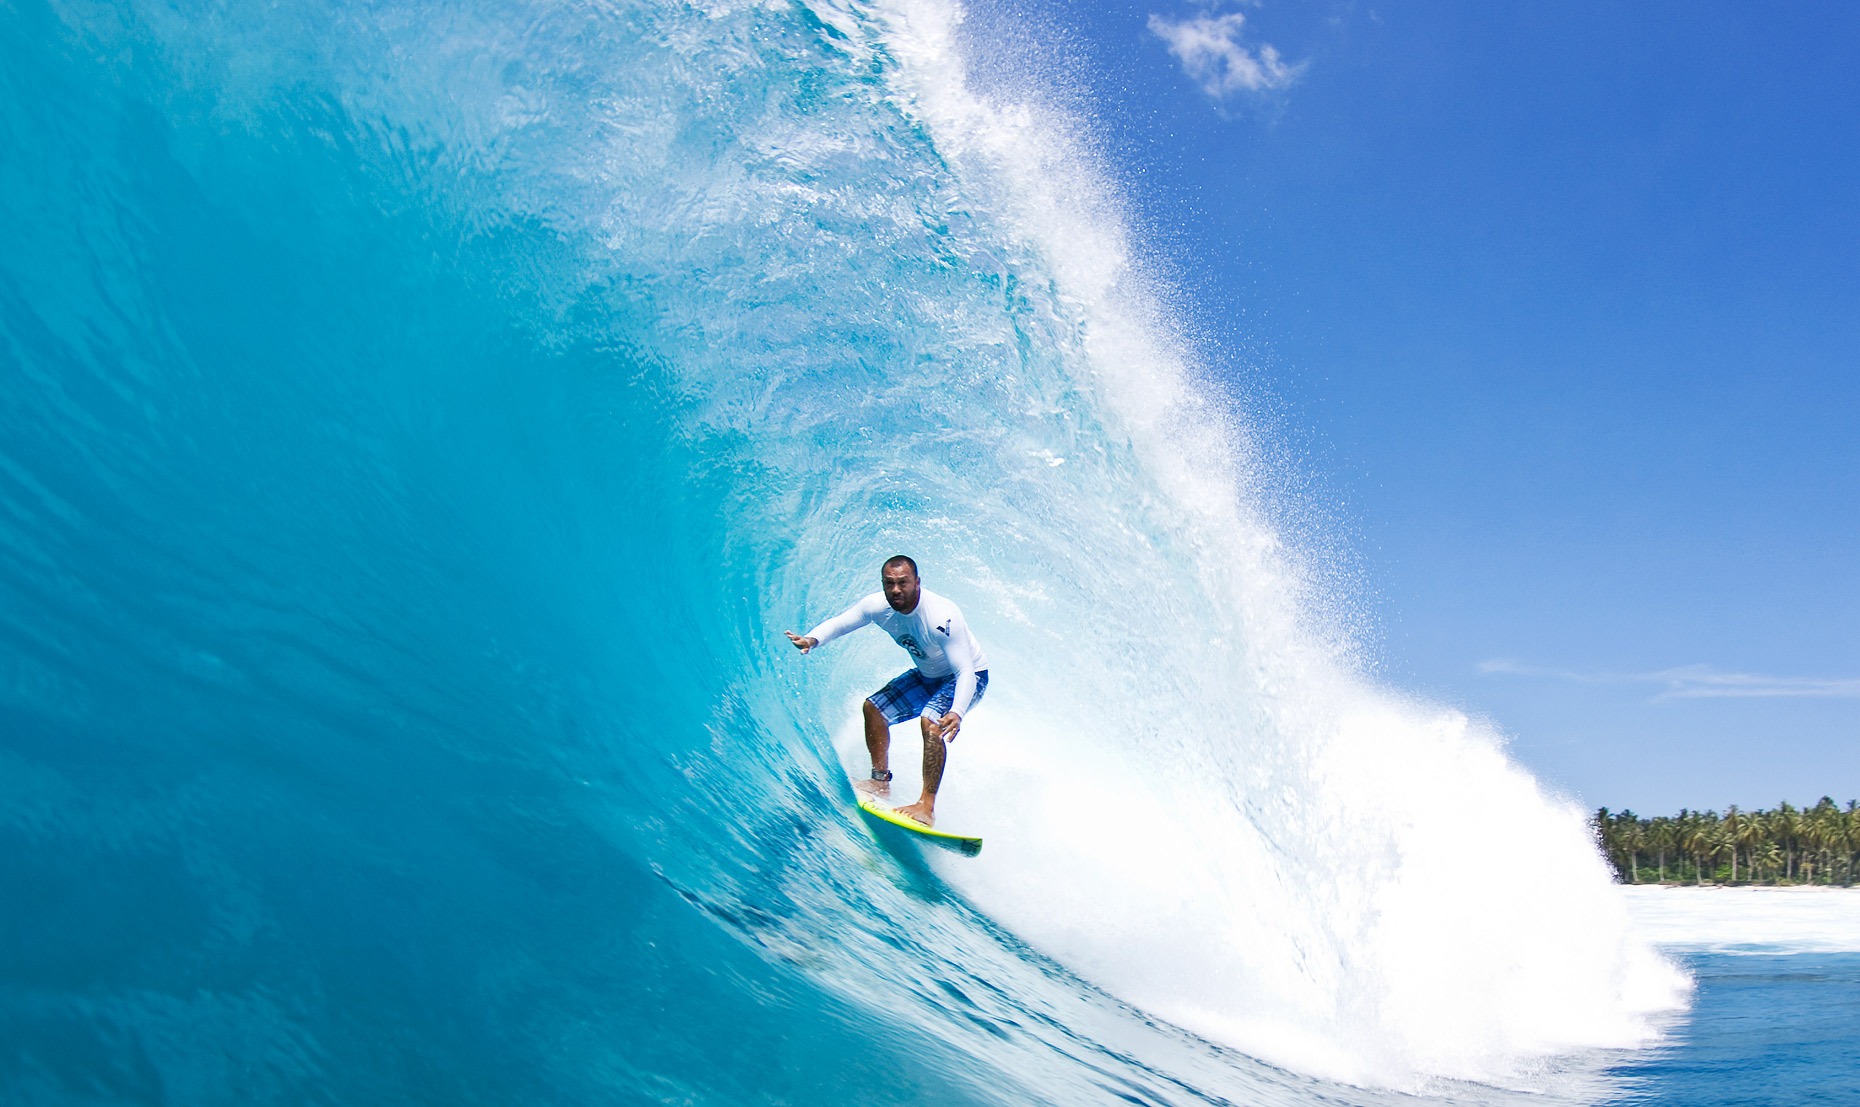 Carve Sunny Garcia Photography | Geoffrey Ragatz Photographer